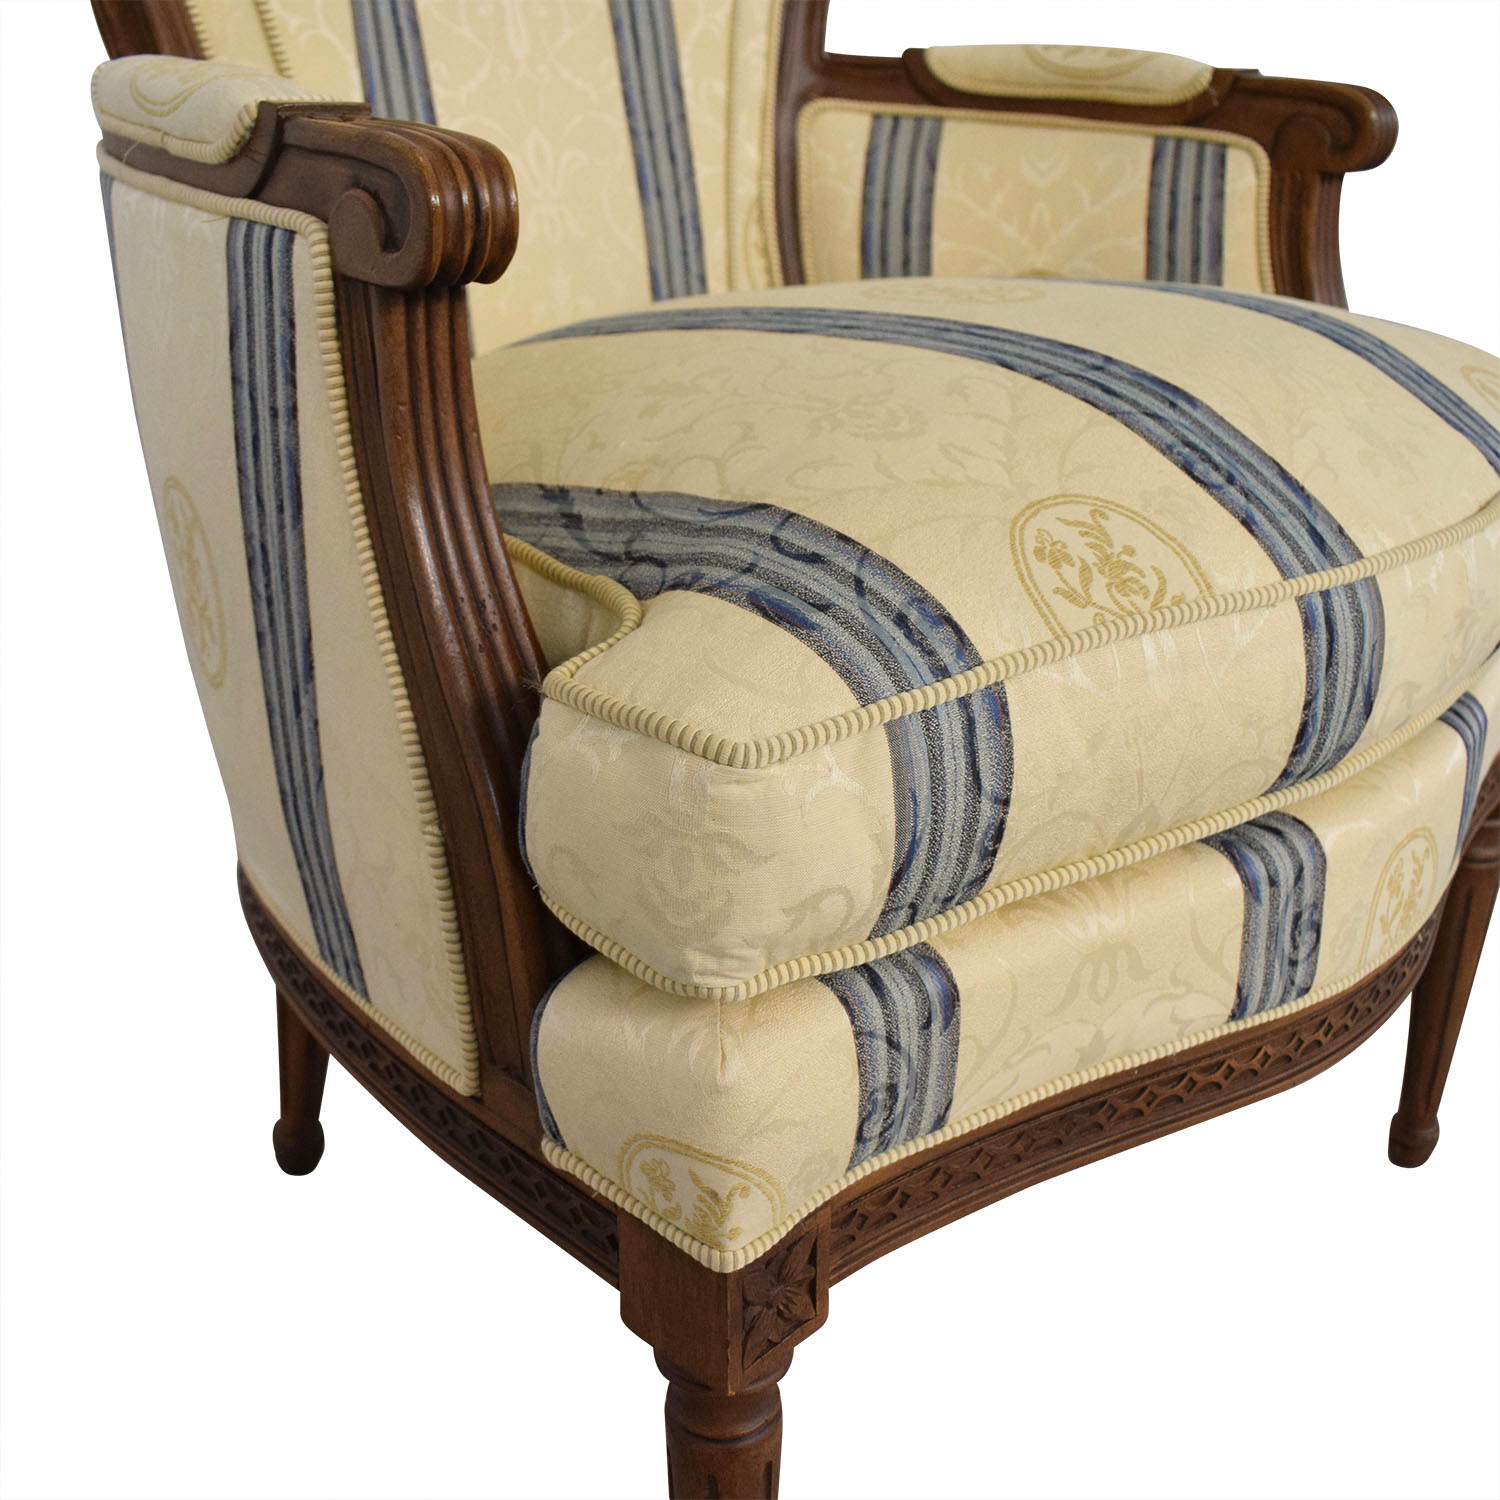 Kravet Chair / Accent Chairs